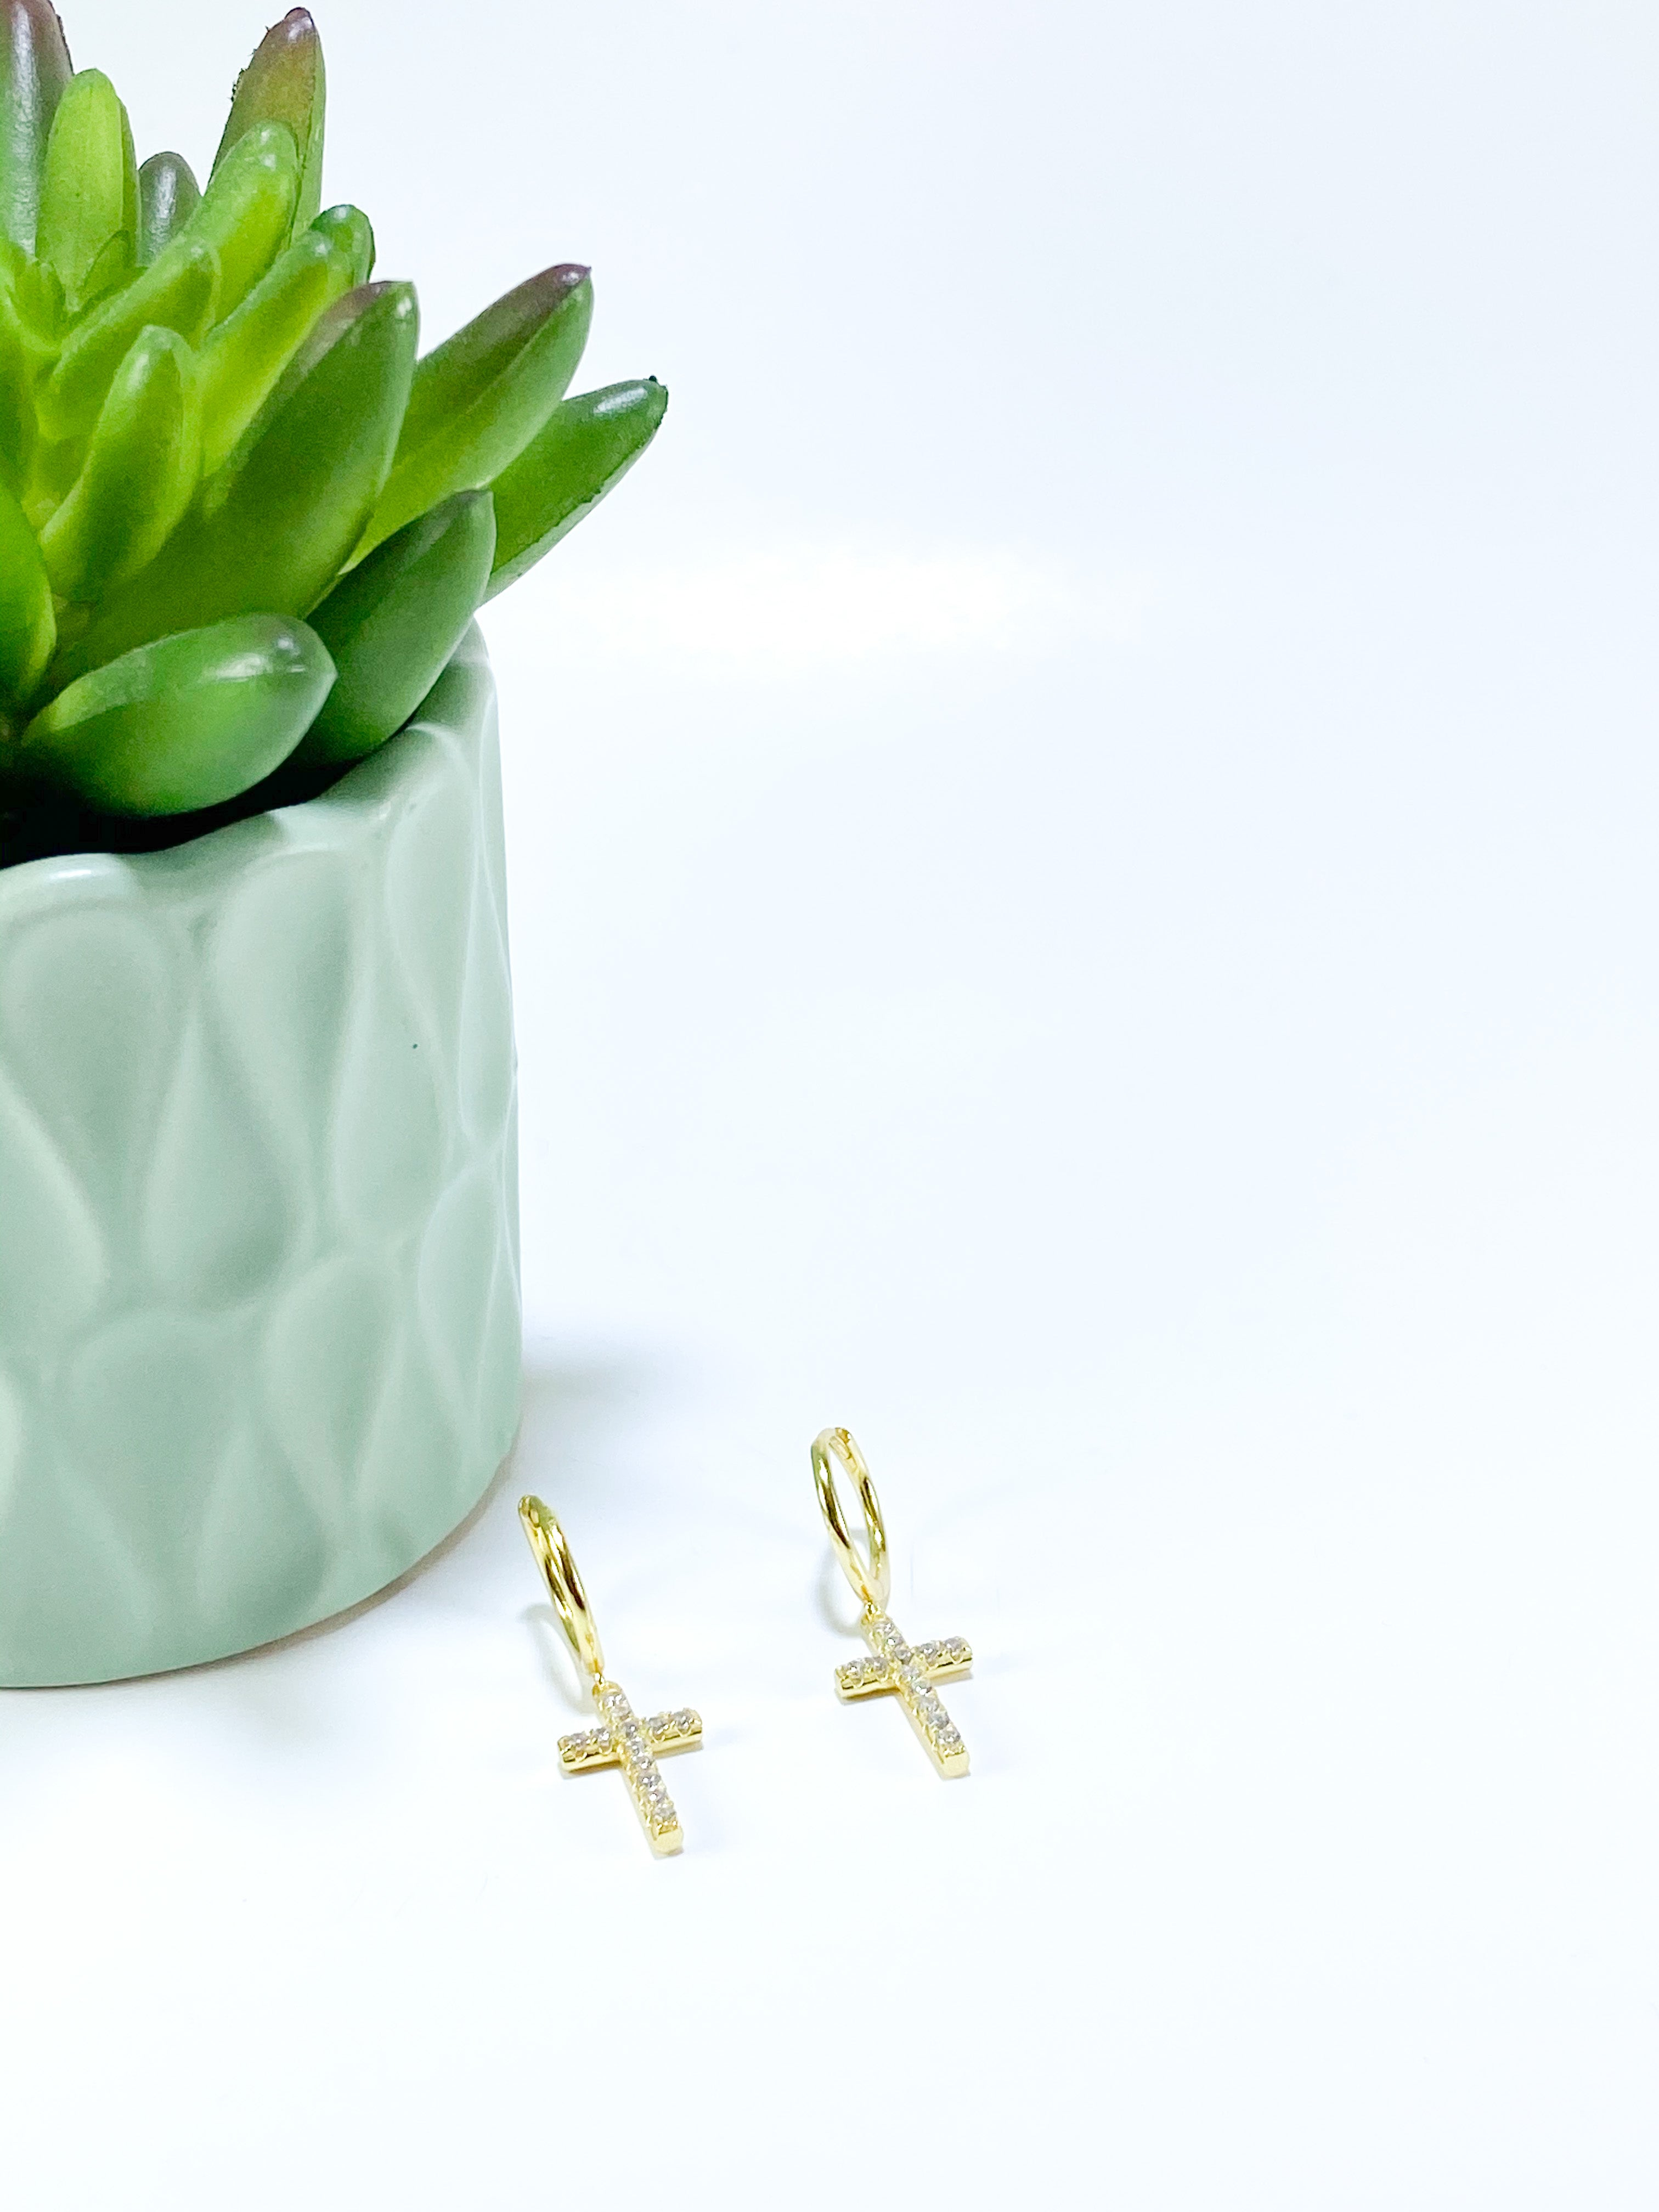 gold earrings with crosses